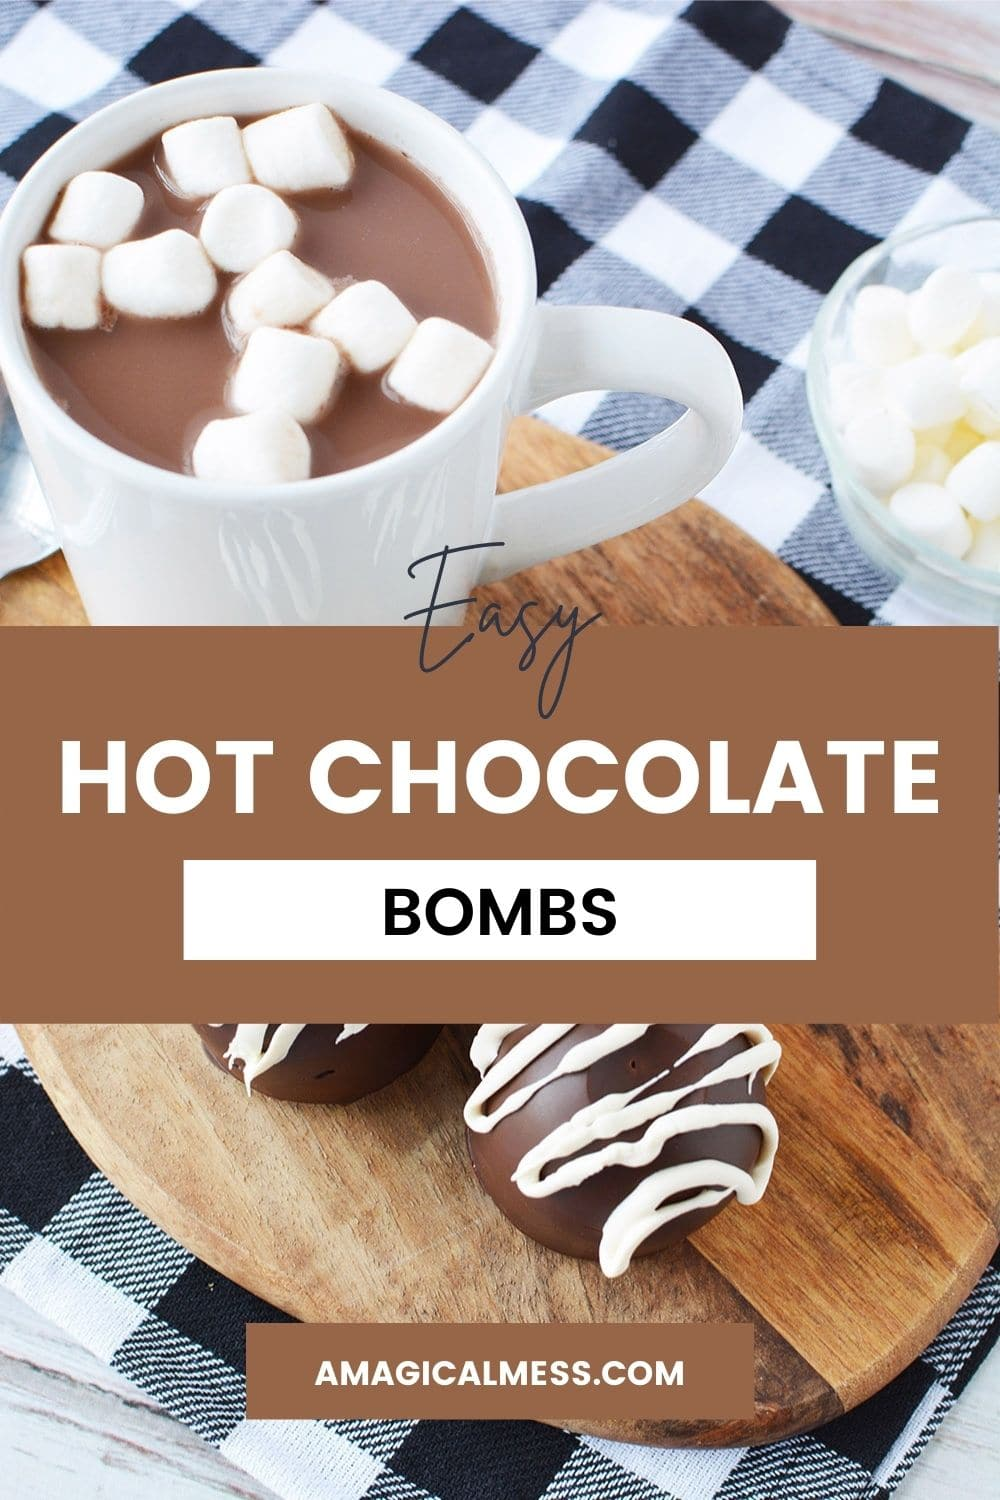 Mug full of hot cocoa next to hot chocolate bombs on a board.